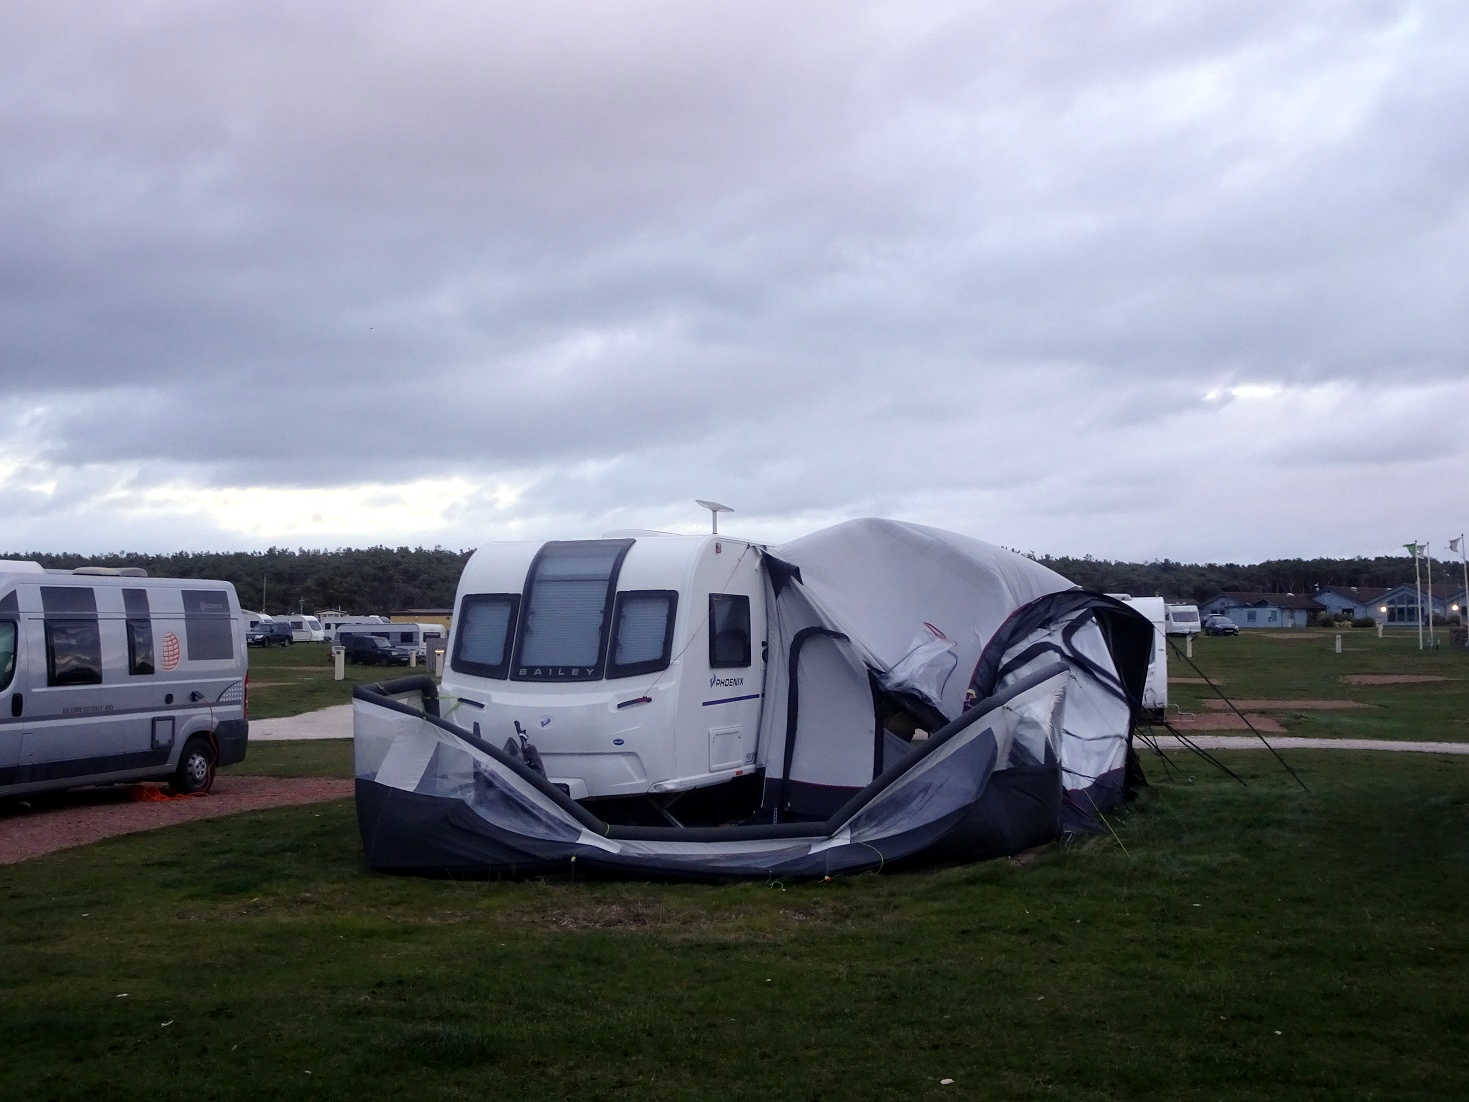 wind damage at the campsite